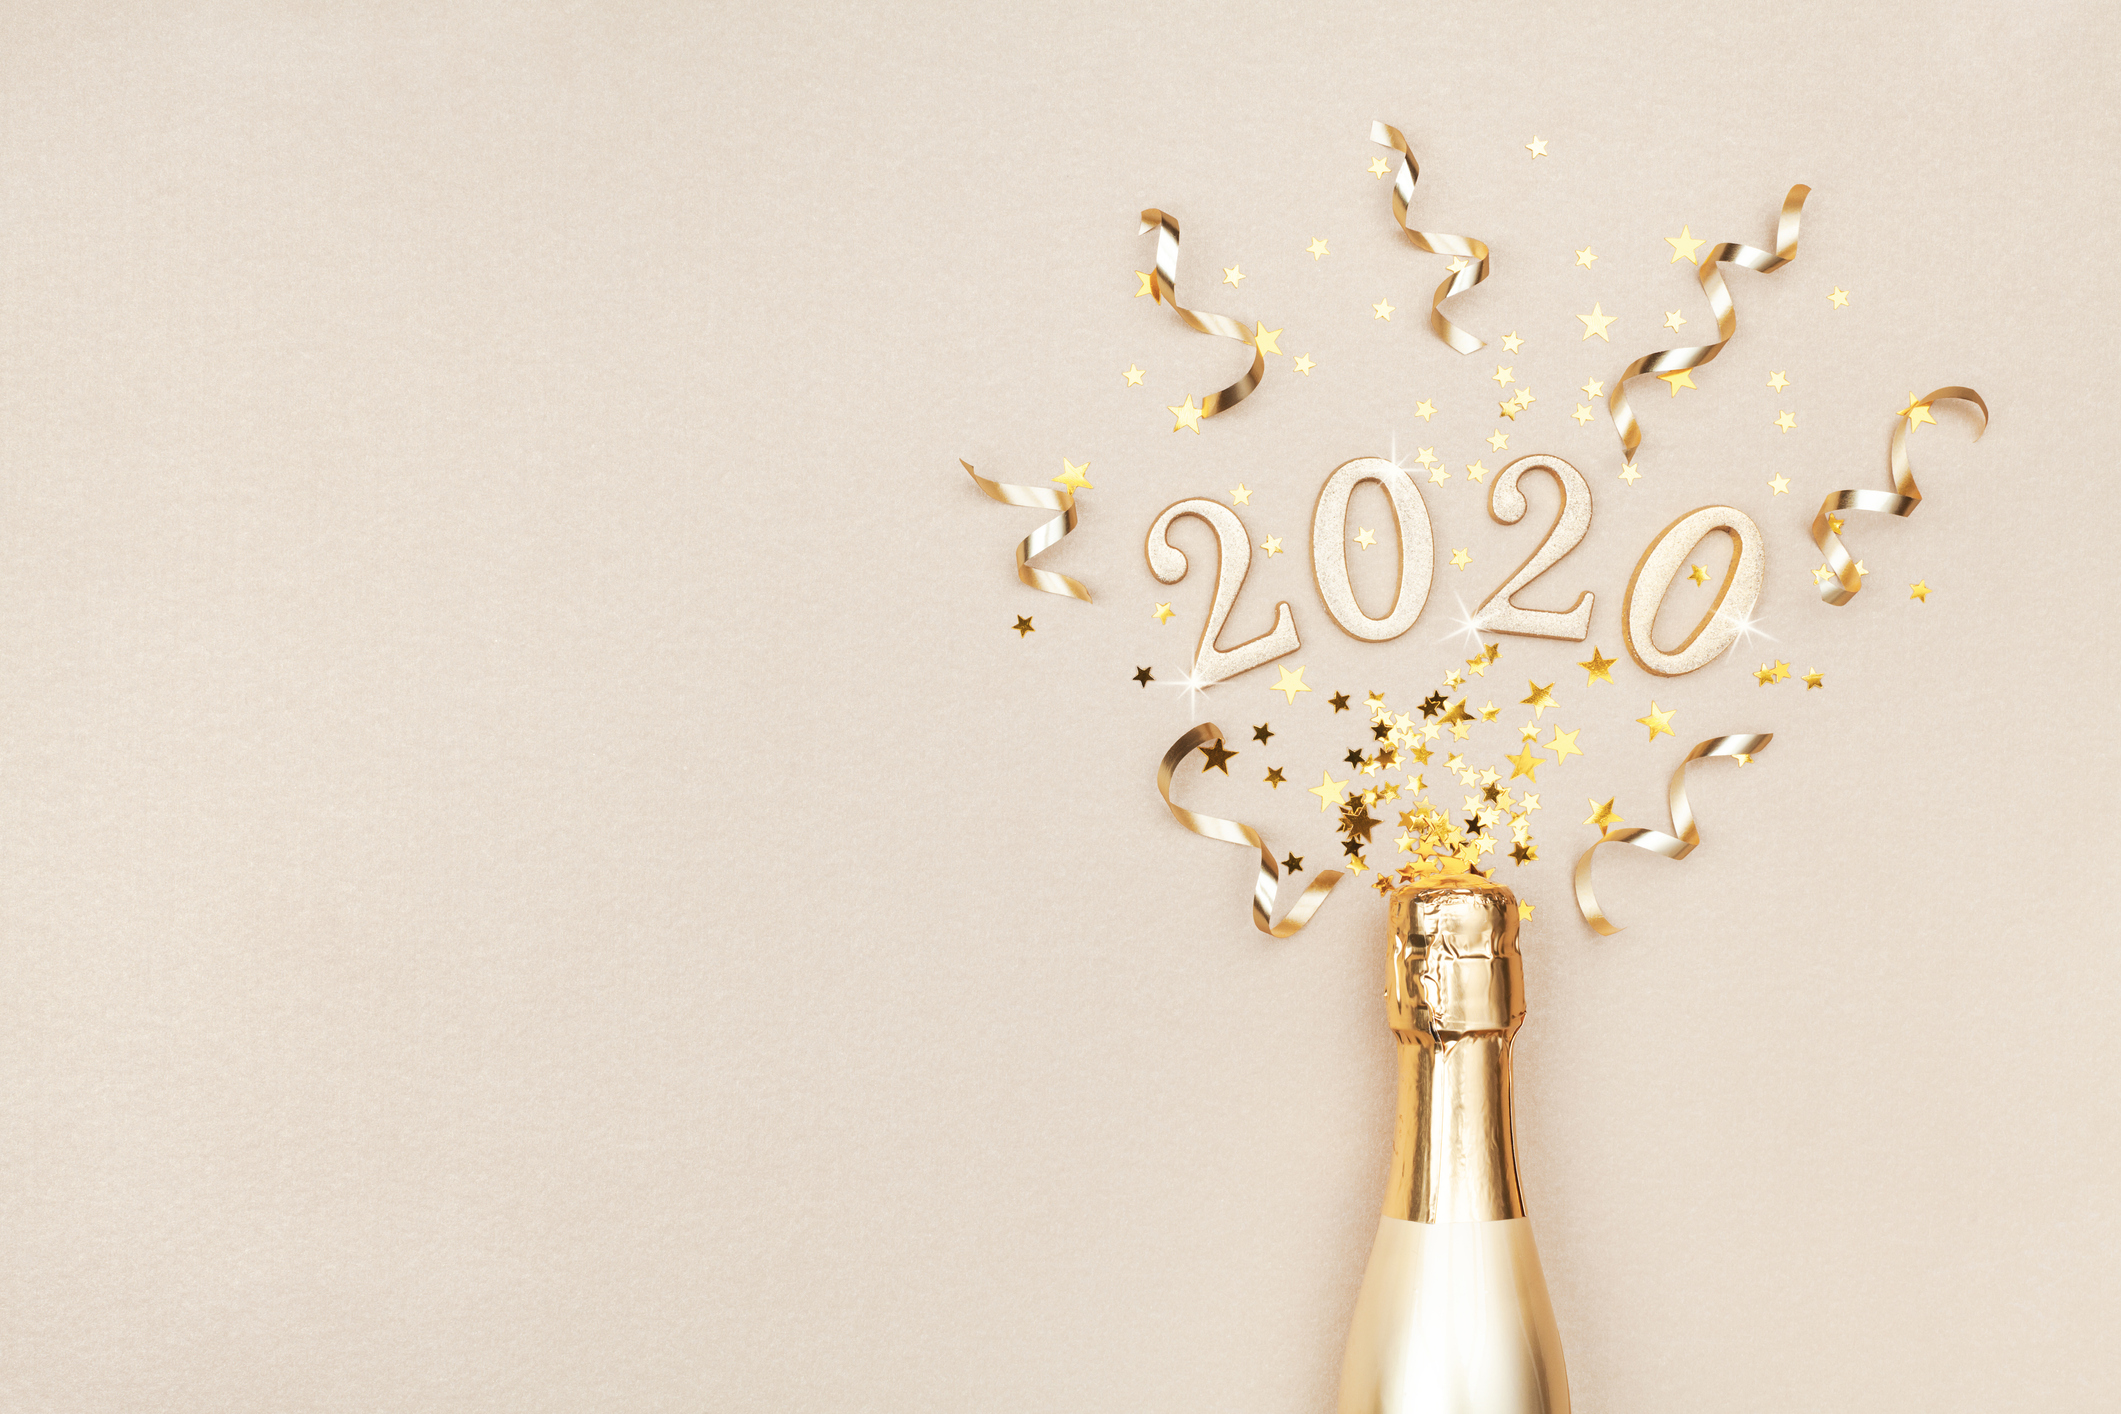 Creative Christmas and New Year flat lay composition with golden champagne bottle, party streamers, confetti stars and 2020 numbers.